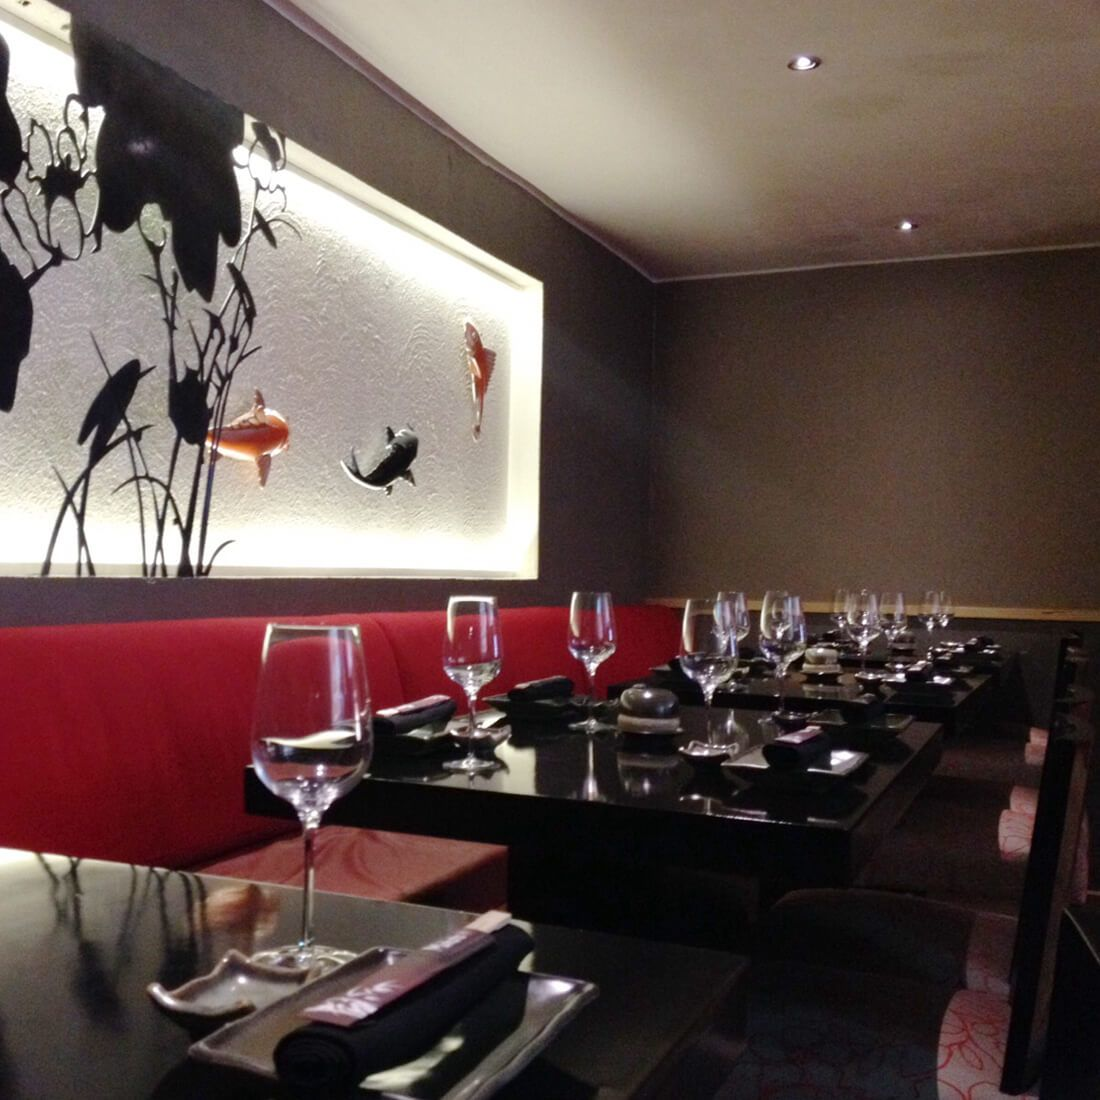 MAKOTO - MIRAFLORES Restaurant - and Peruvian Food NIKKEI AND JAPANESE CUISINE - MIRAFLORES - MESA 24/7 Guide | LIMA - Peru